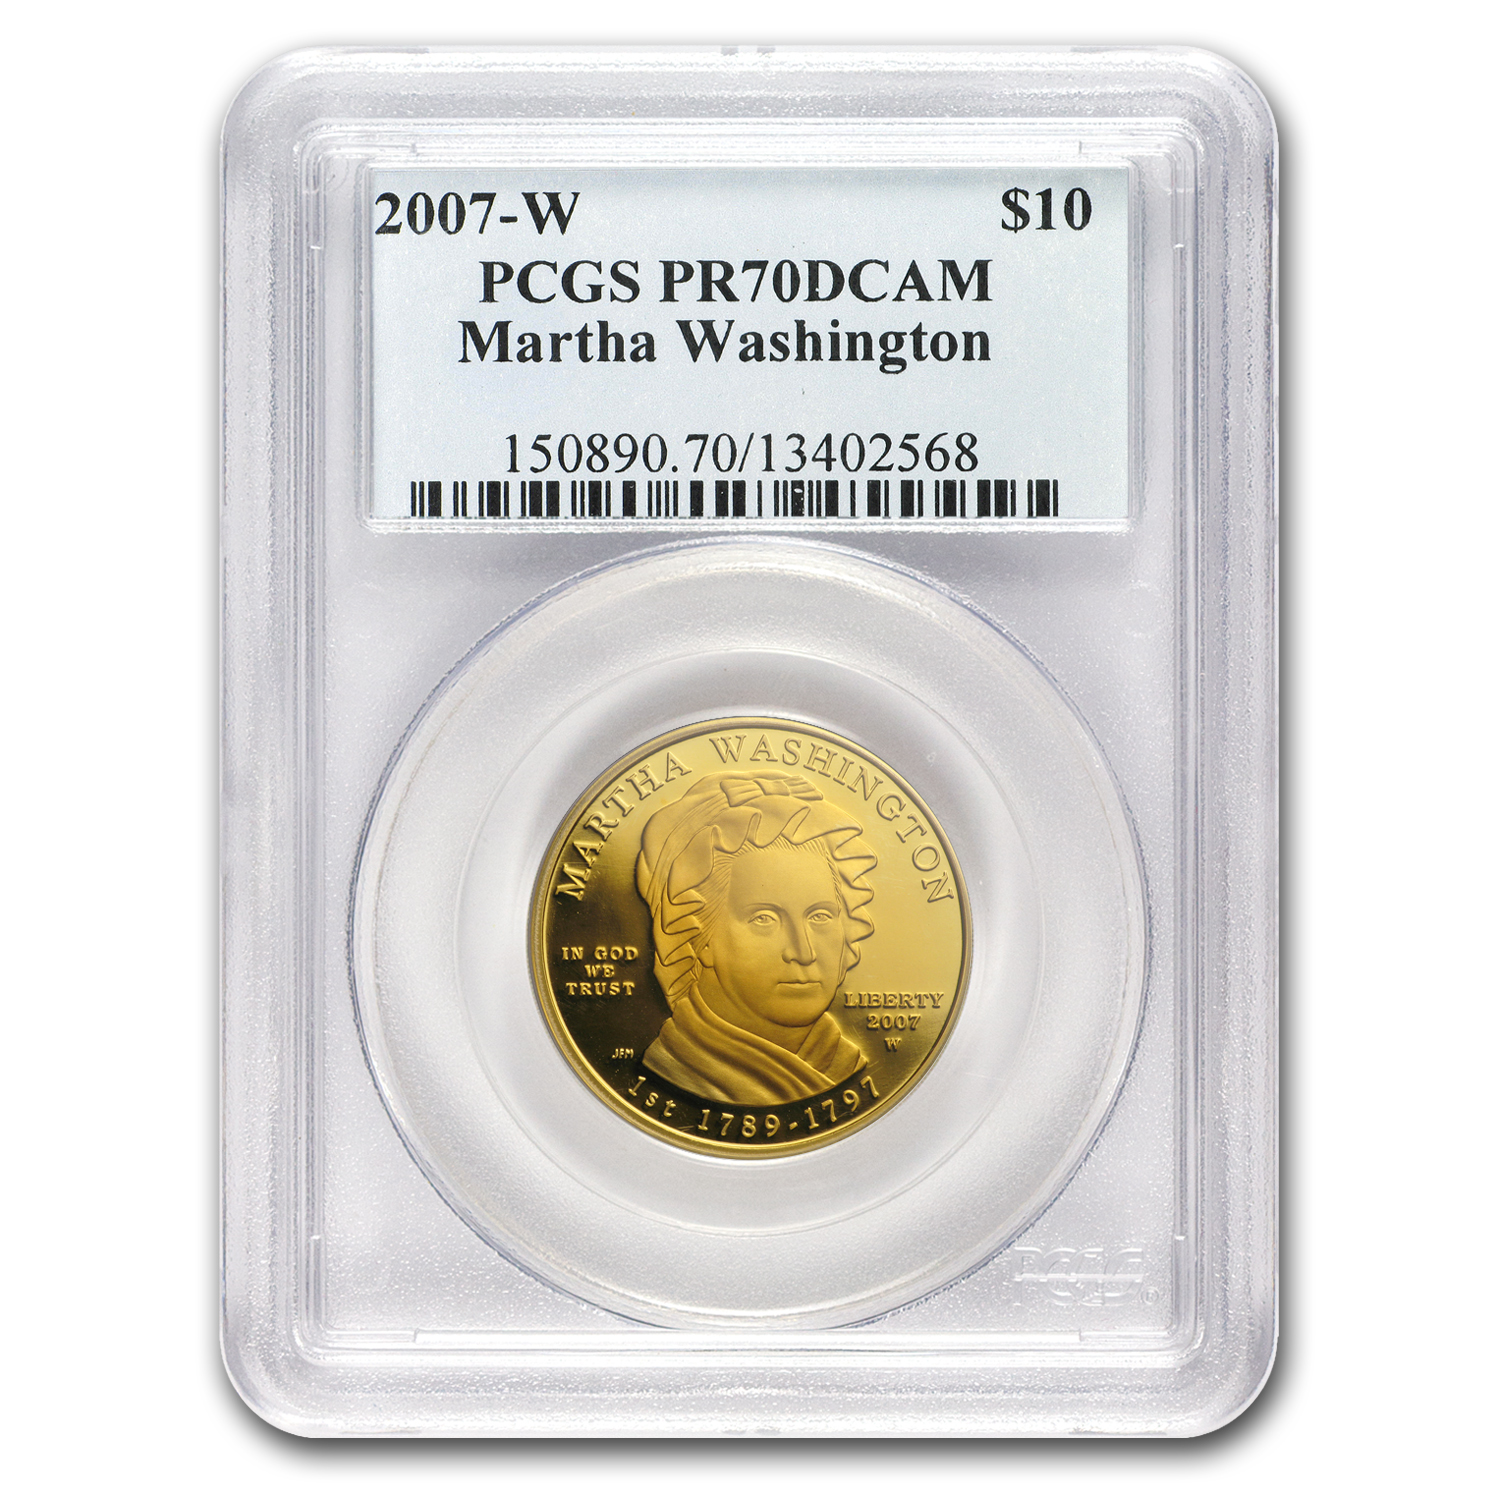 2007-W 1/2 oz Proof Gold Martha Washington PR-70 PCGS